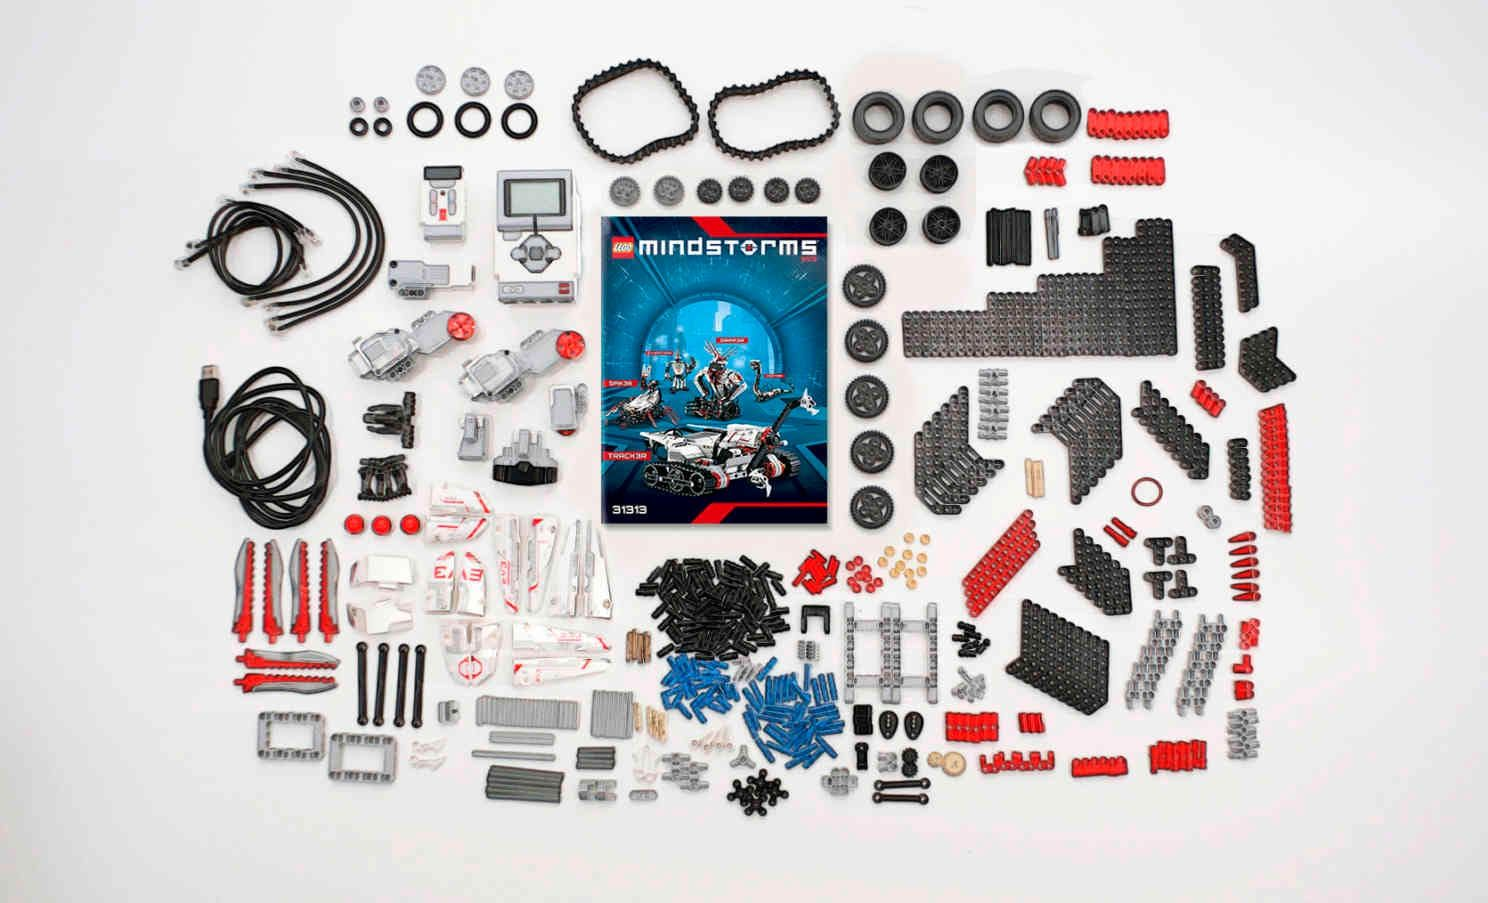 laptop with lego mindstorms application